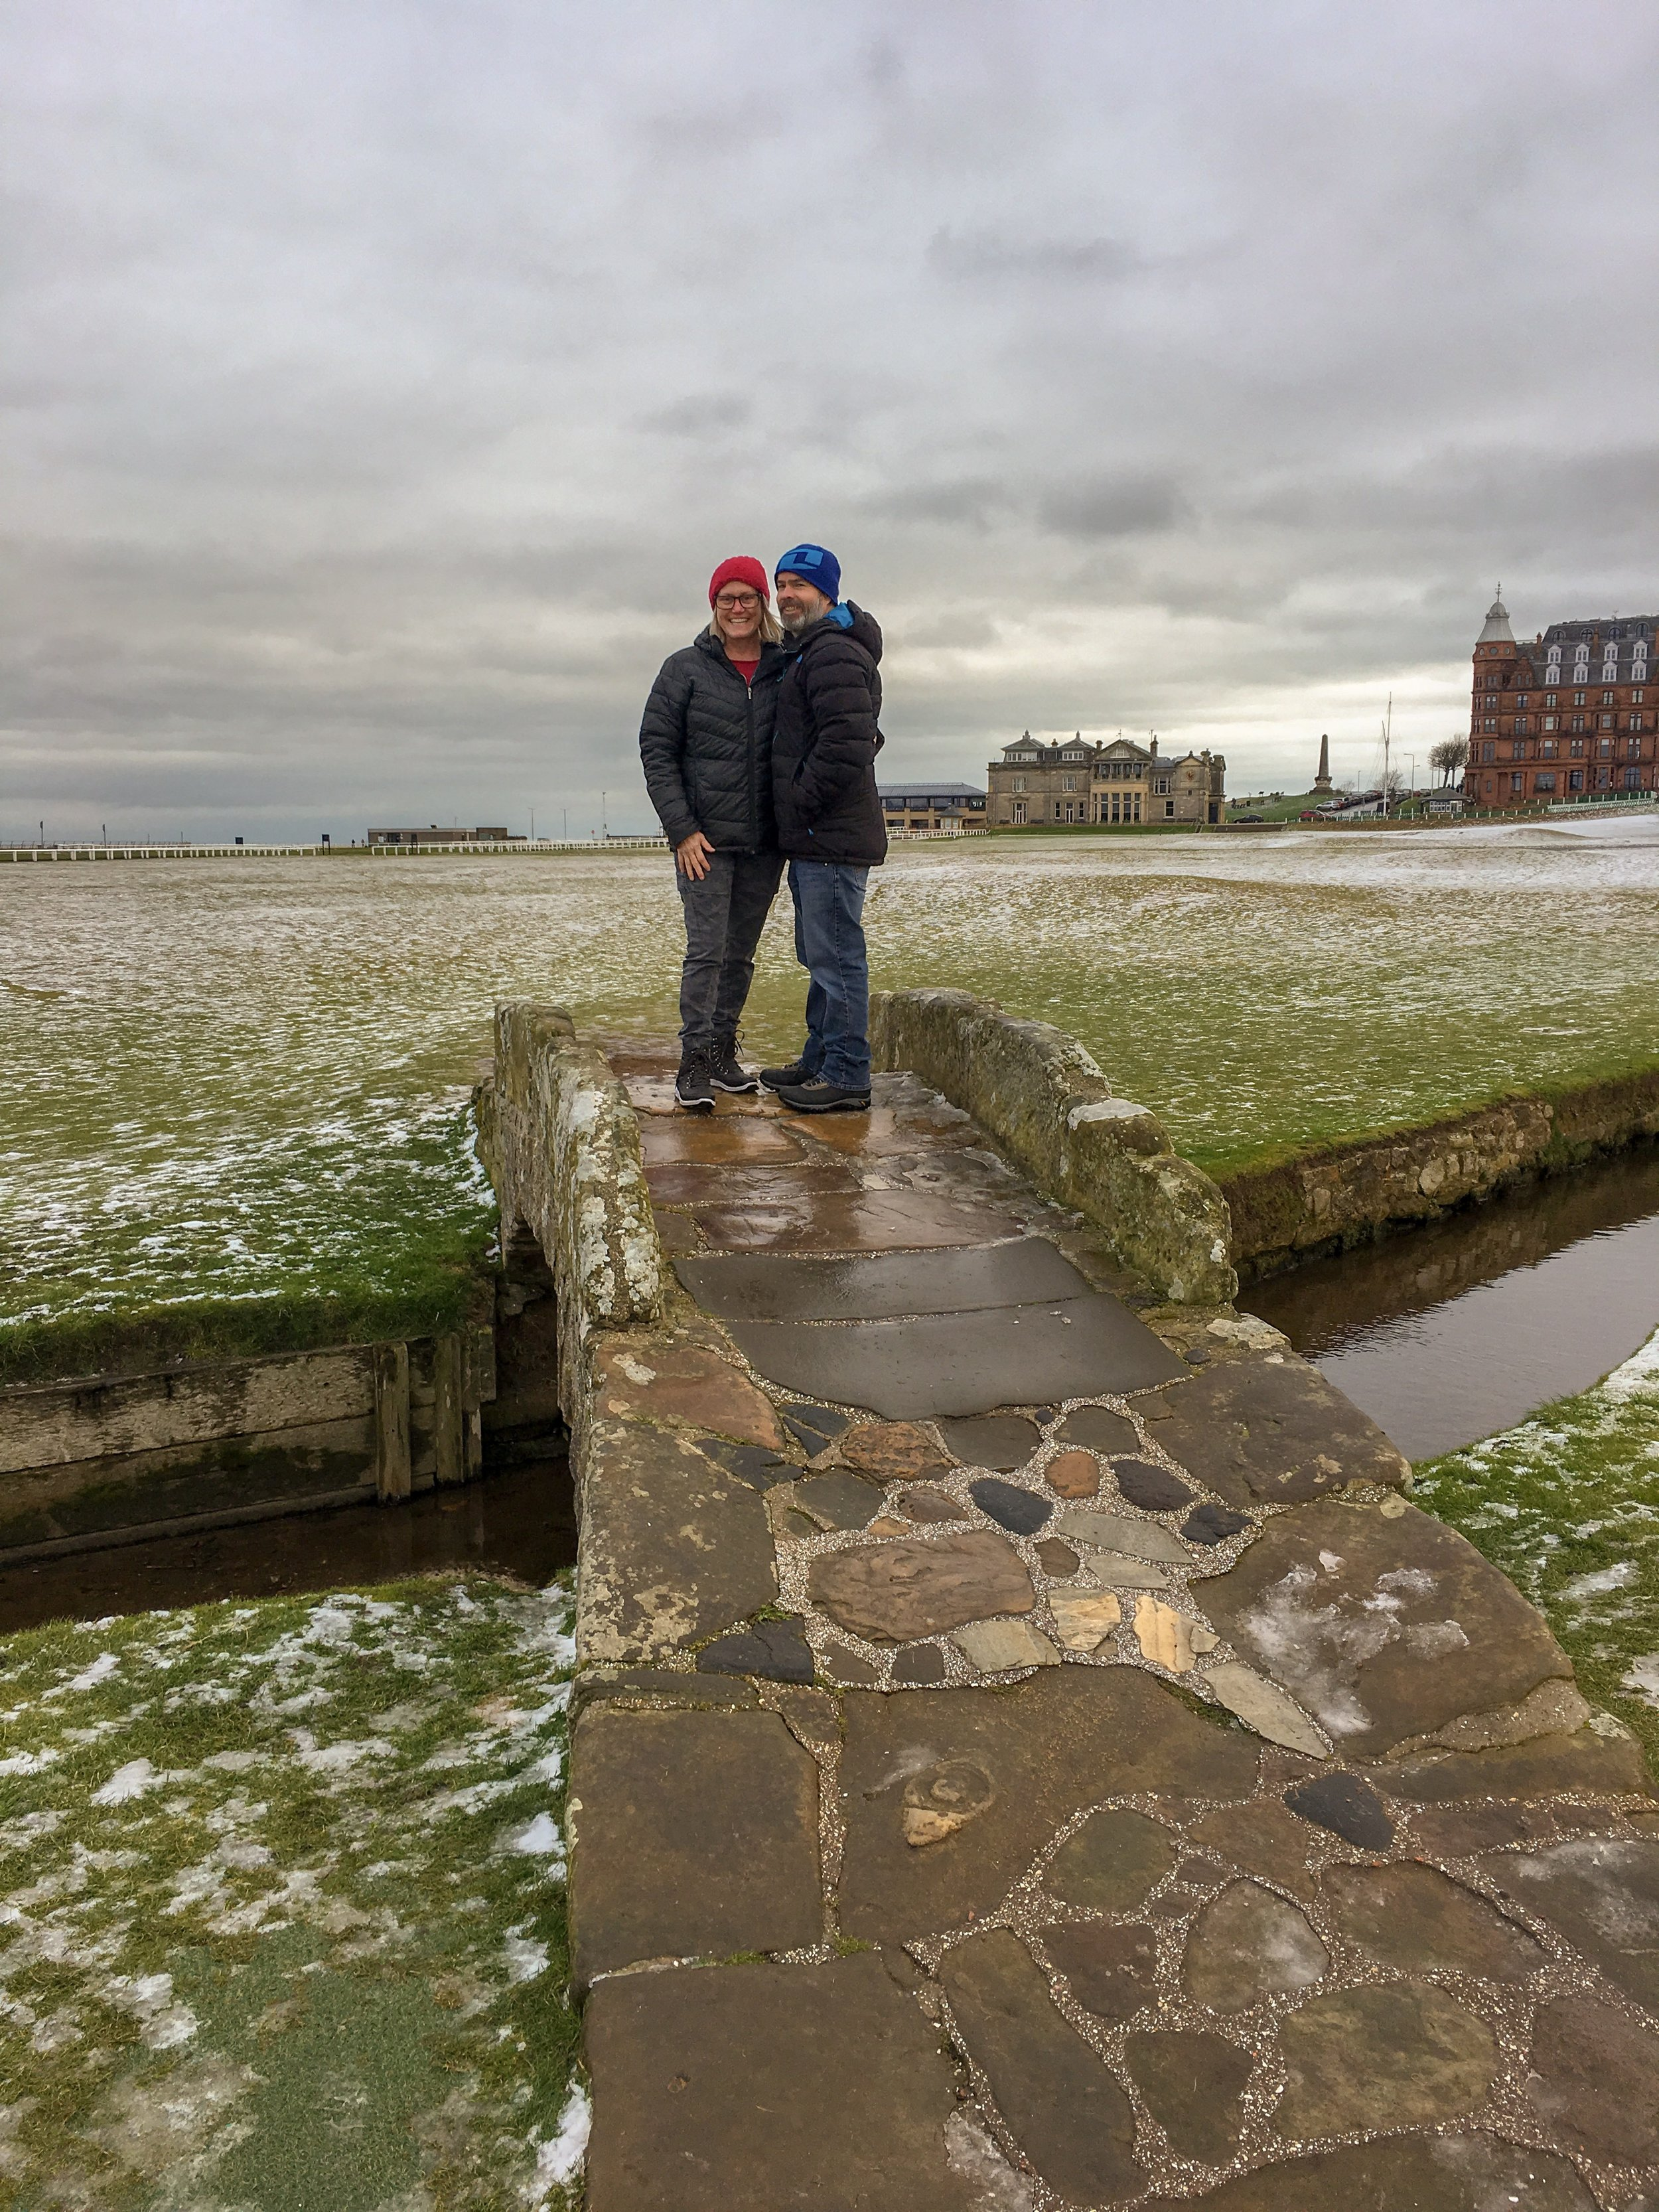 On a wee bridge at the Royal and Ancient Golf Club of St. Andrews.